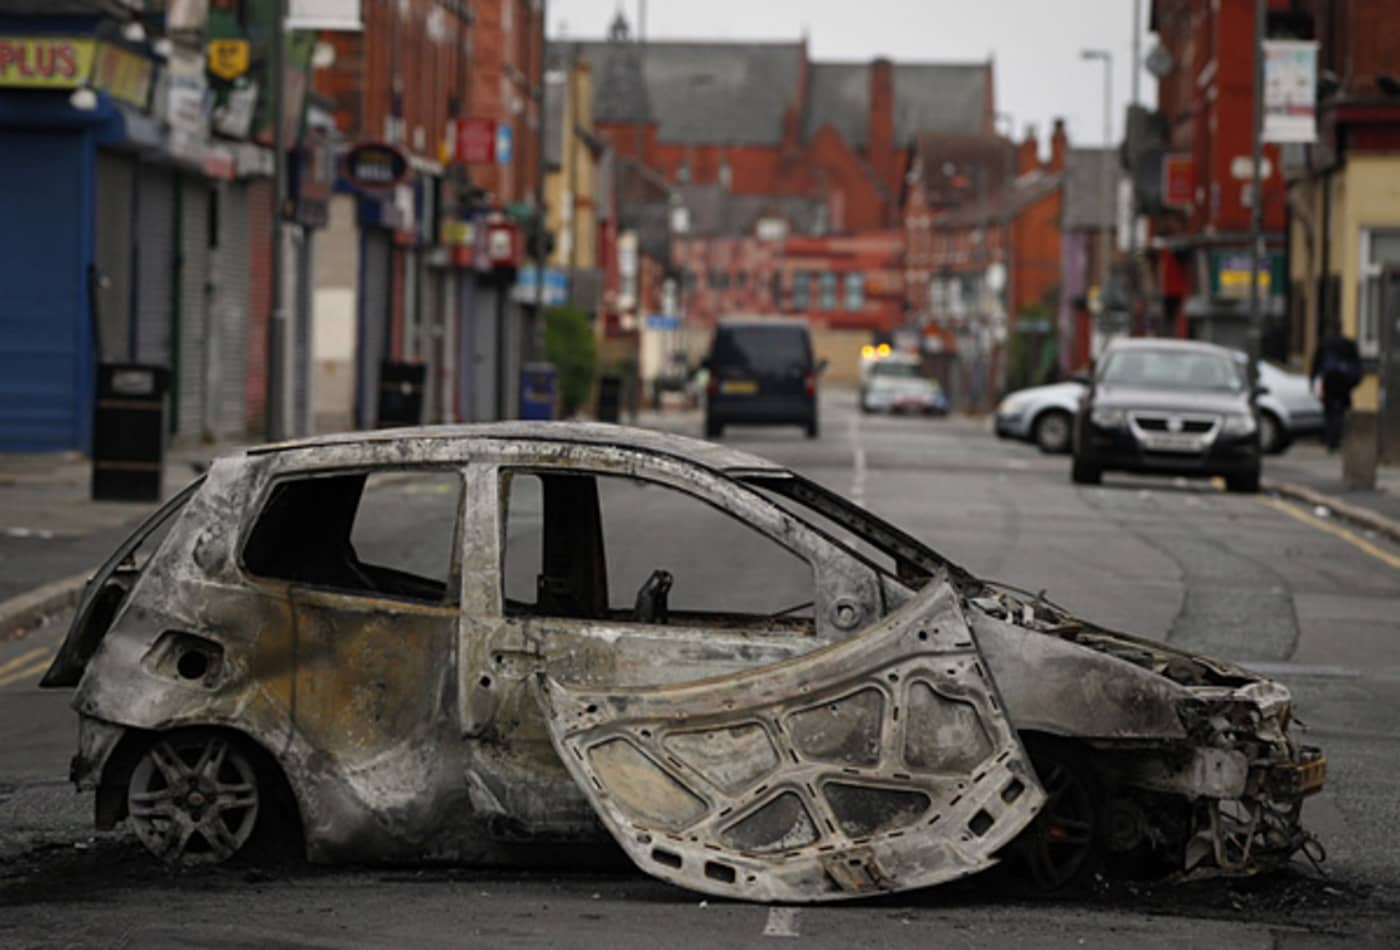 CNBC_scenes_from_london_riots_toxteth_car.jpg